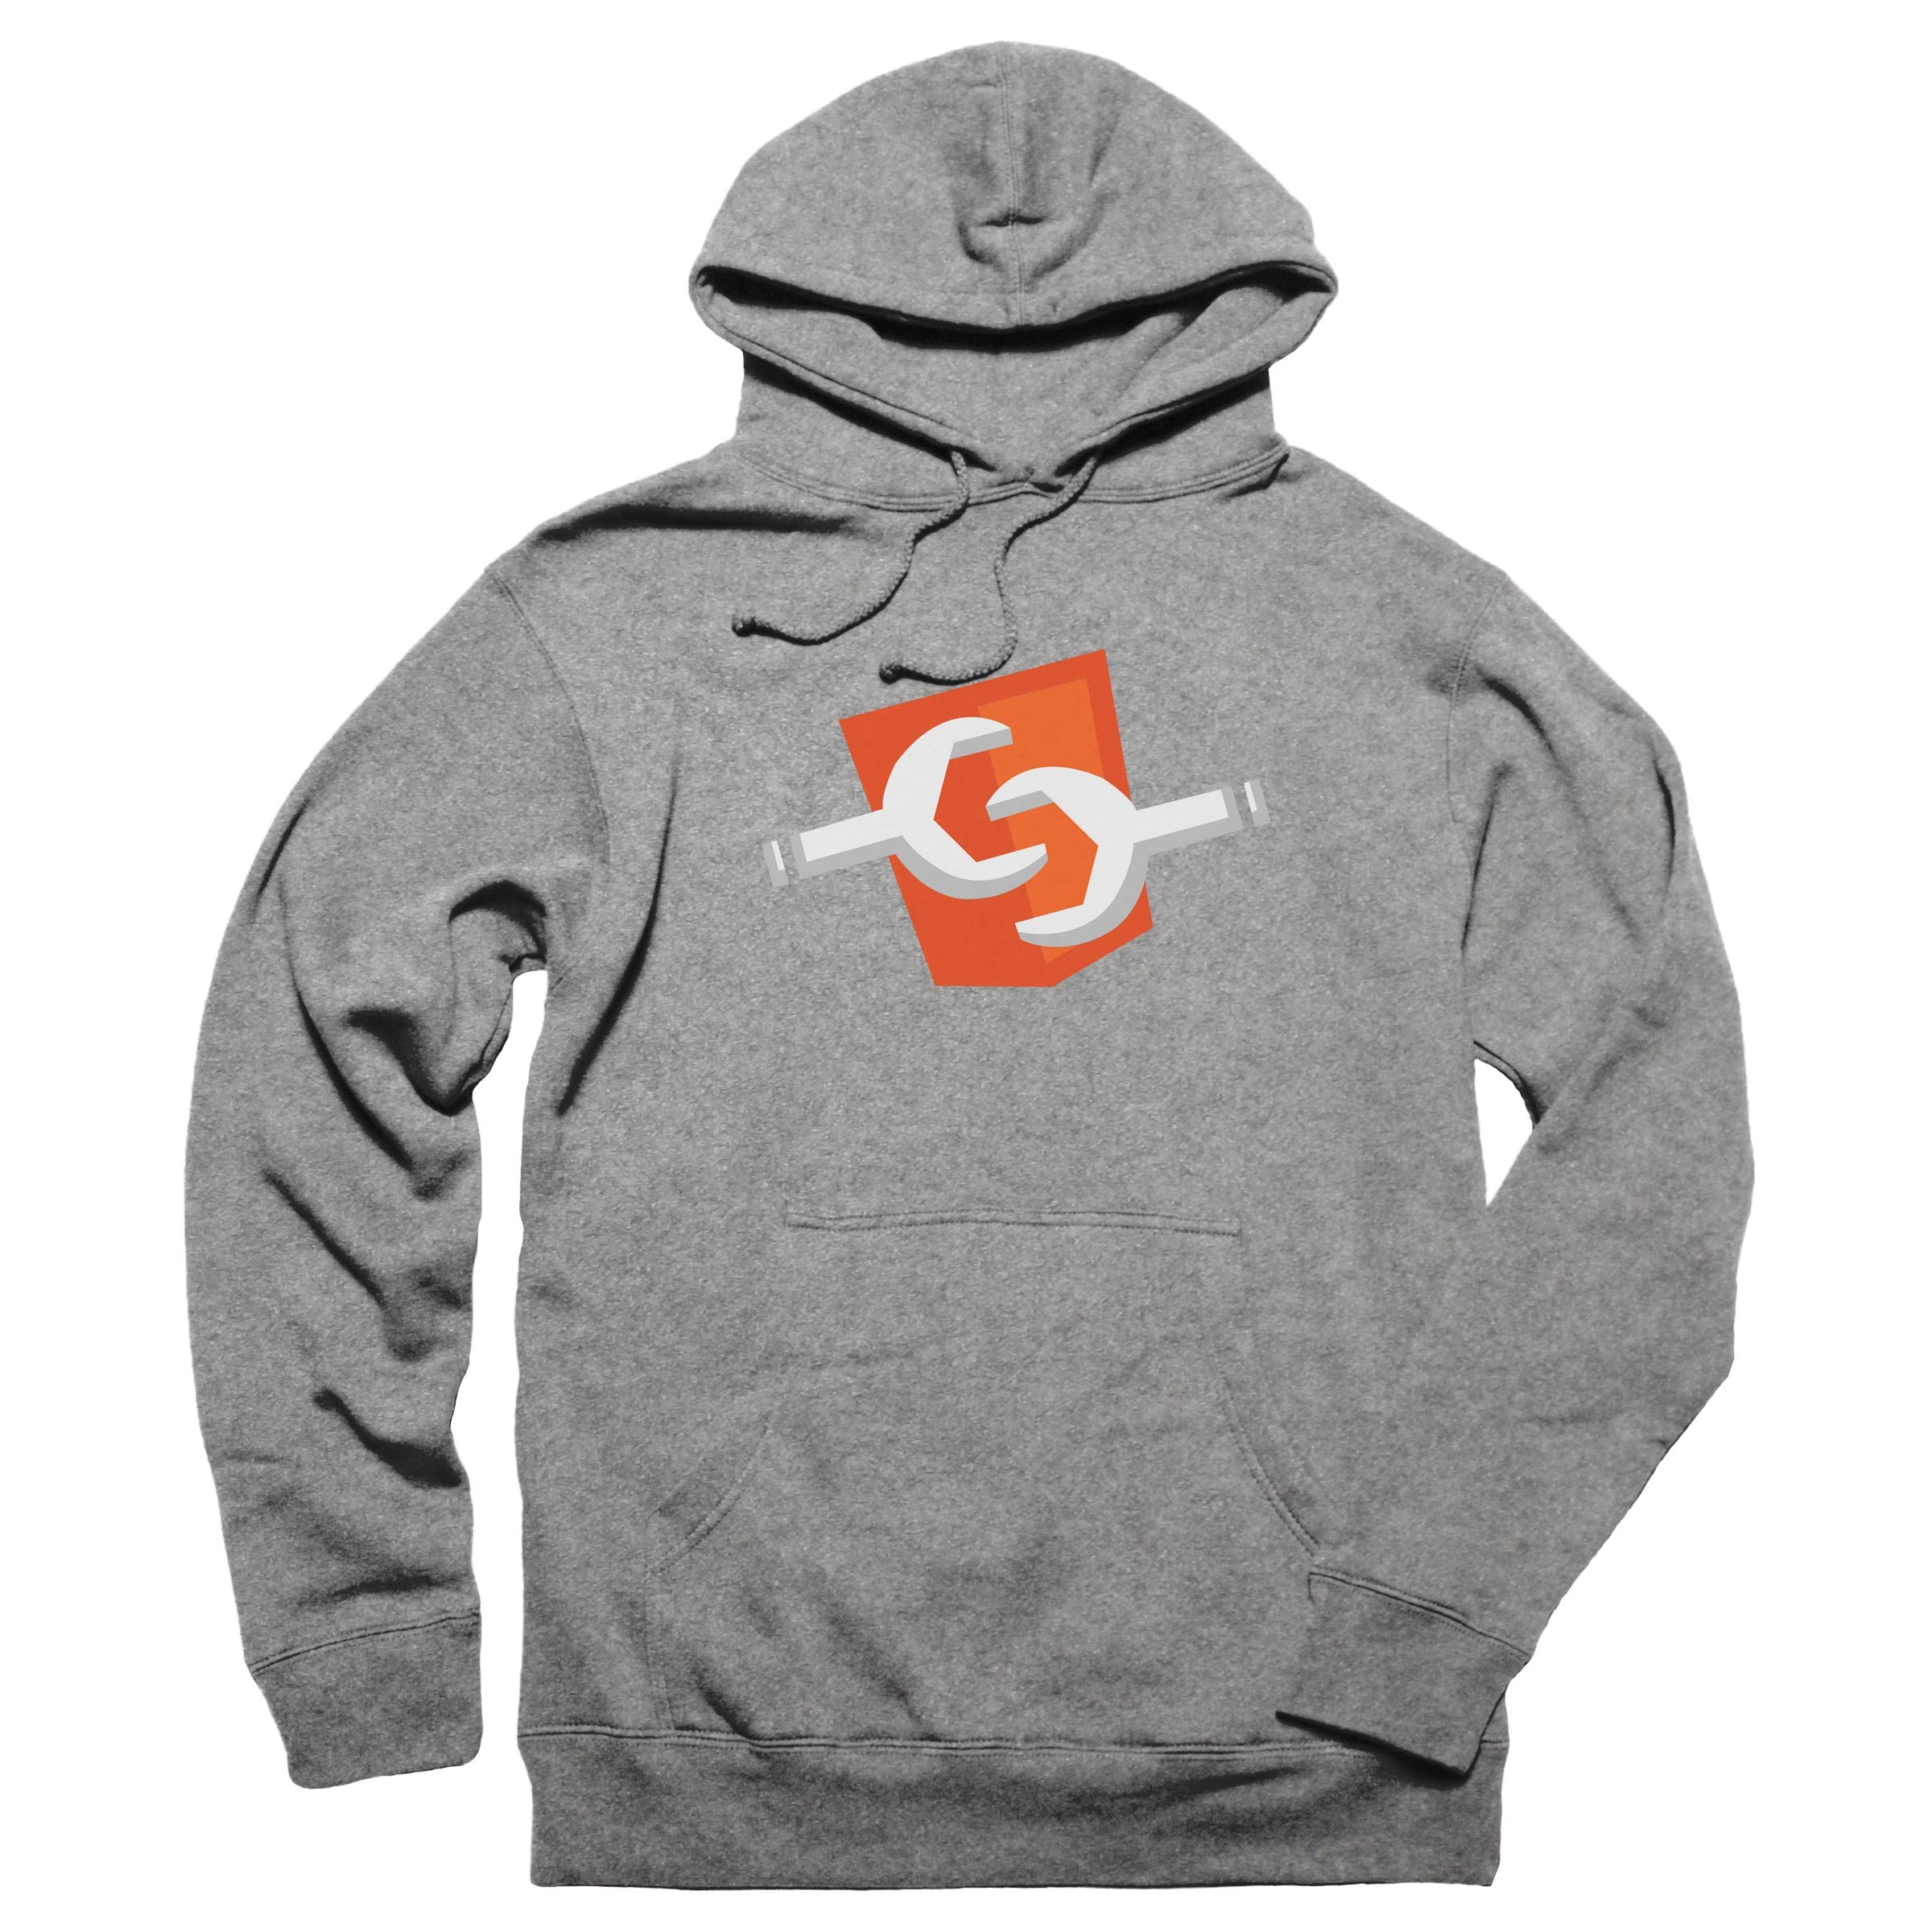 Web Components Pullover Hoodie